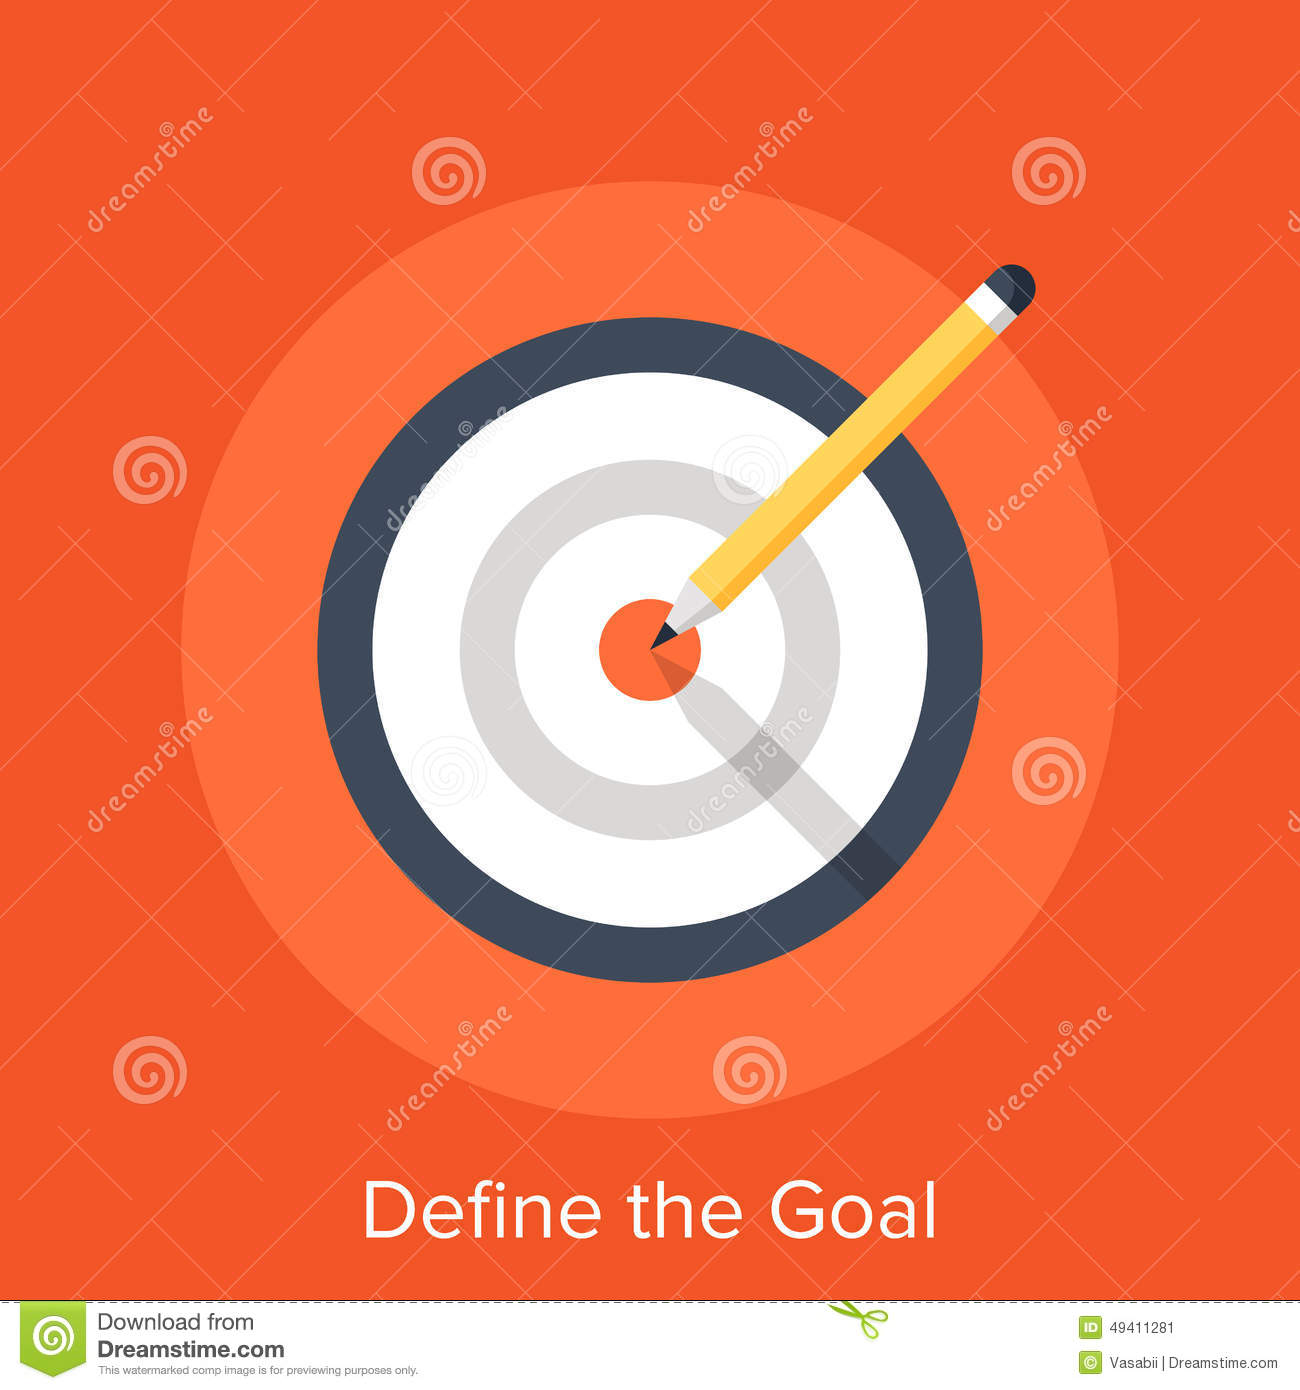 Vector illustration of define the goal flat design concept.: www.dreamstime.com/stock-photo-define-goal-vector-illustration-flat...